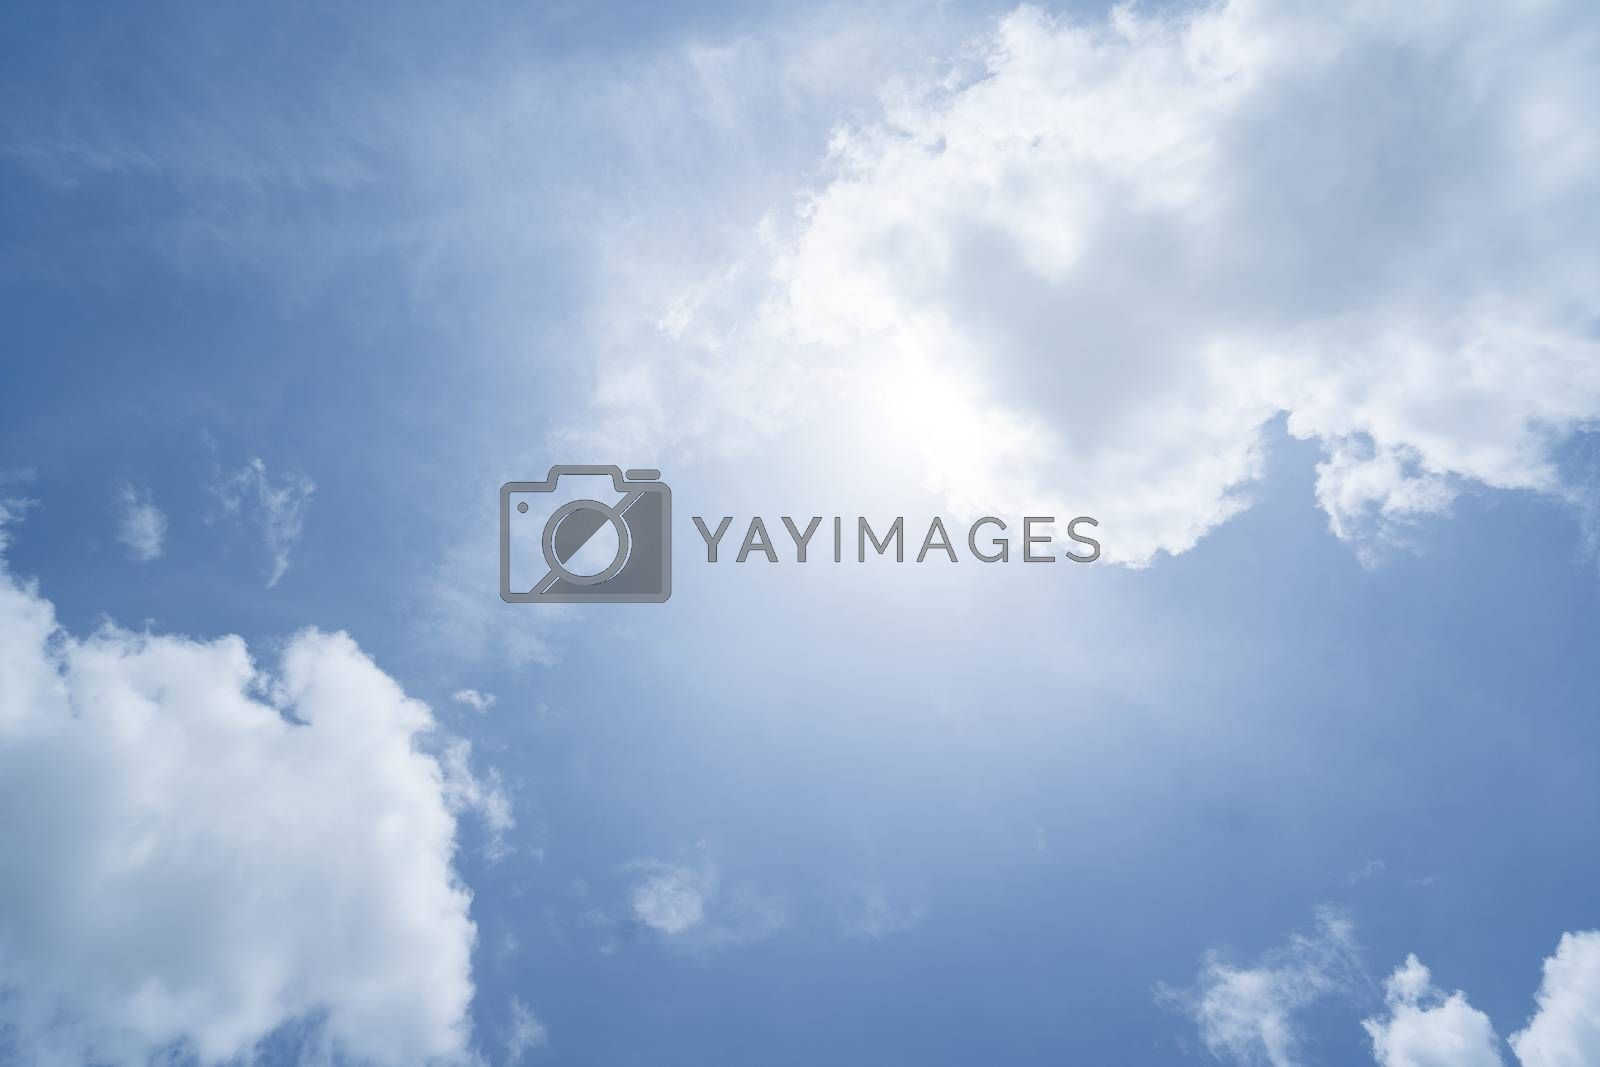 Royalty free image of soft sun and blue skies by antpkr